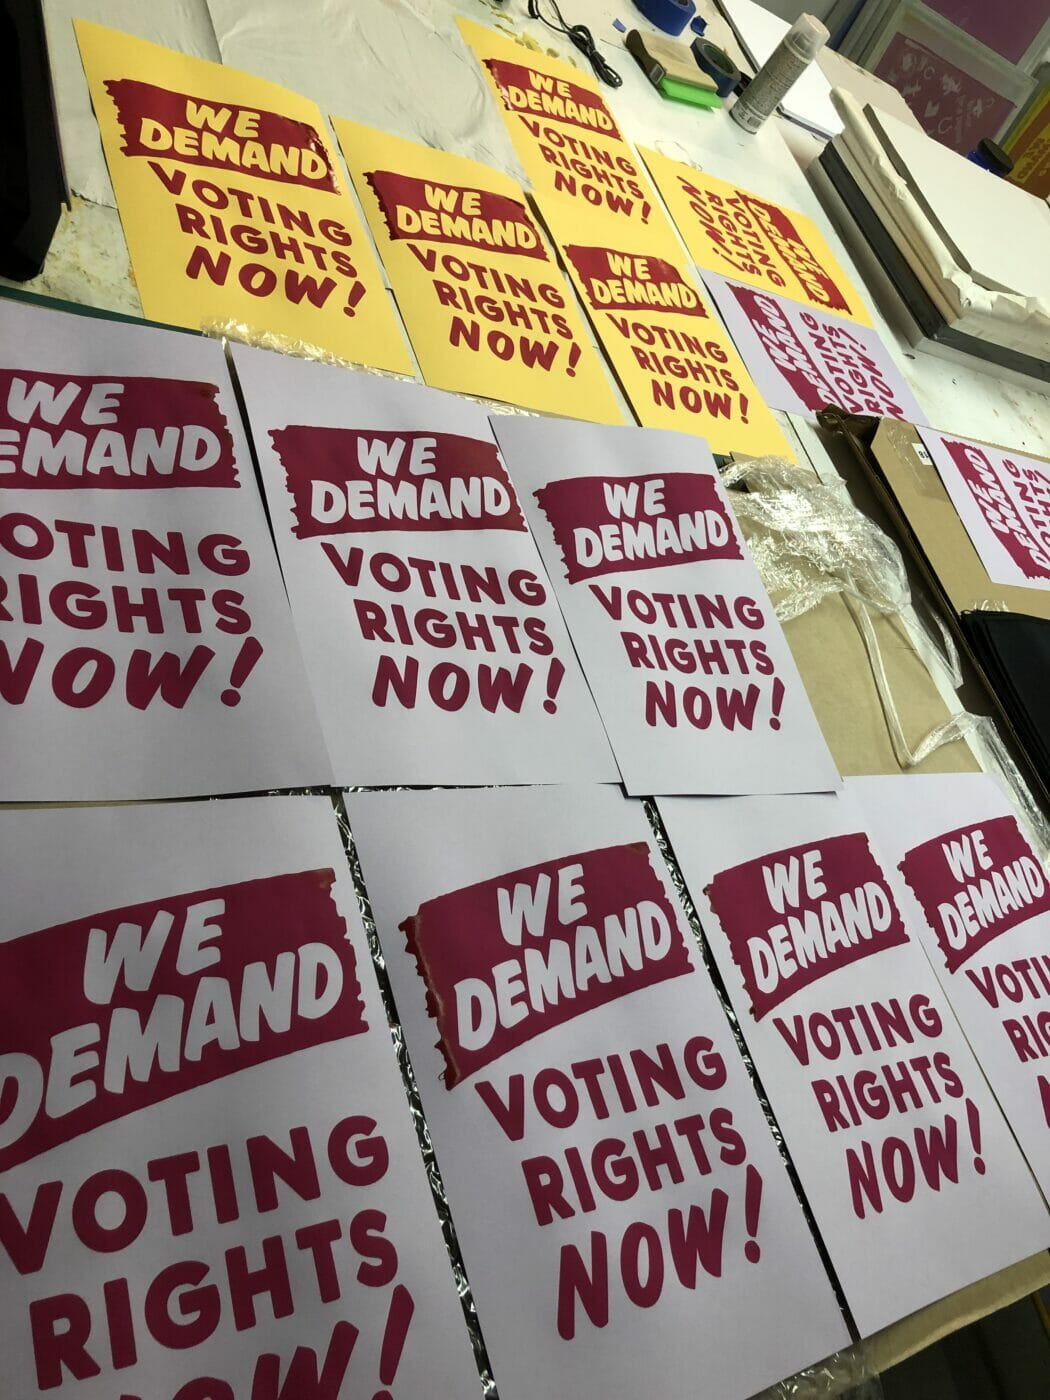 Posters: We Demand Voting Rights Now!